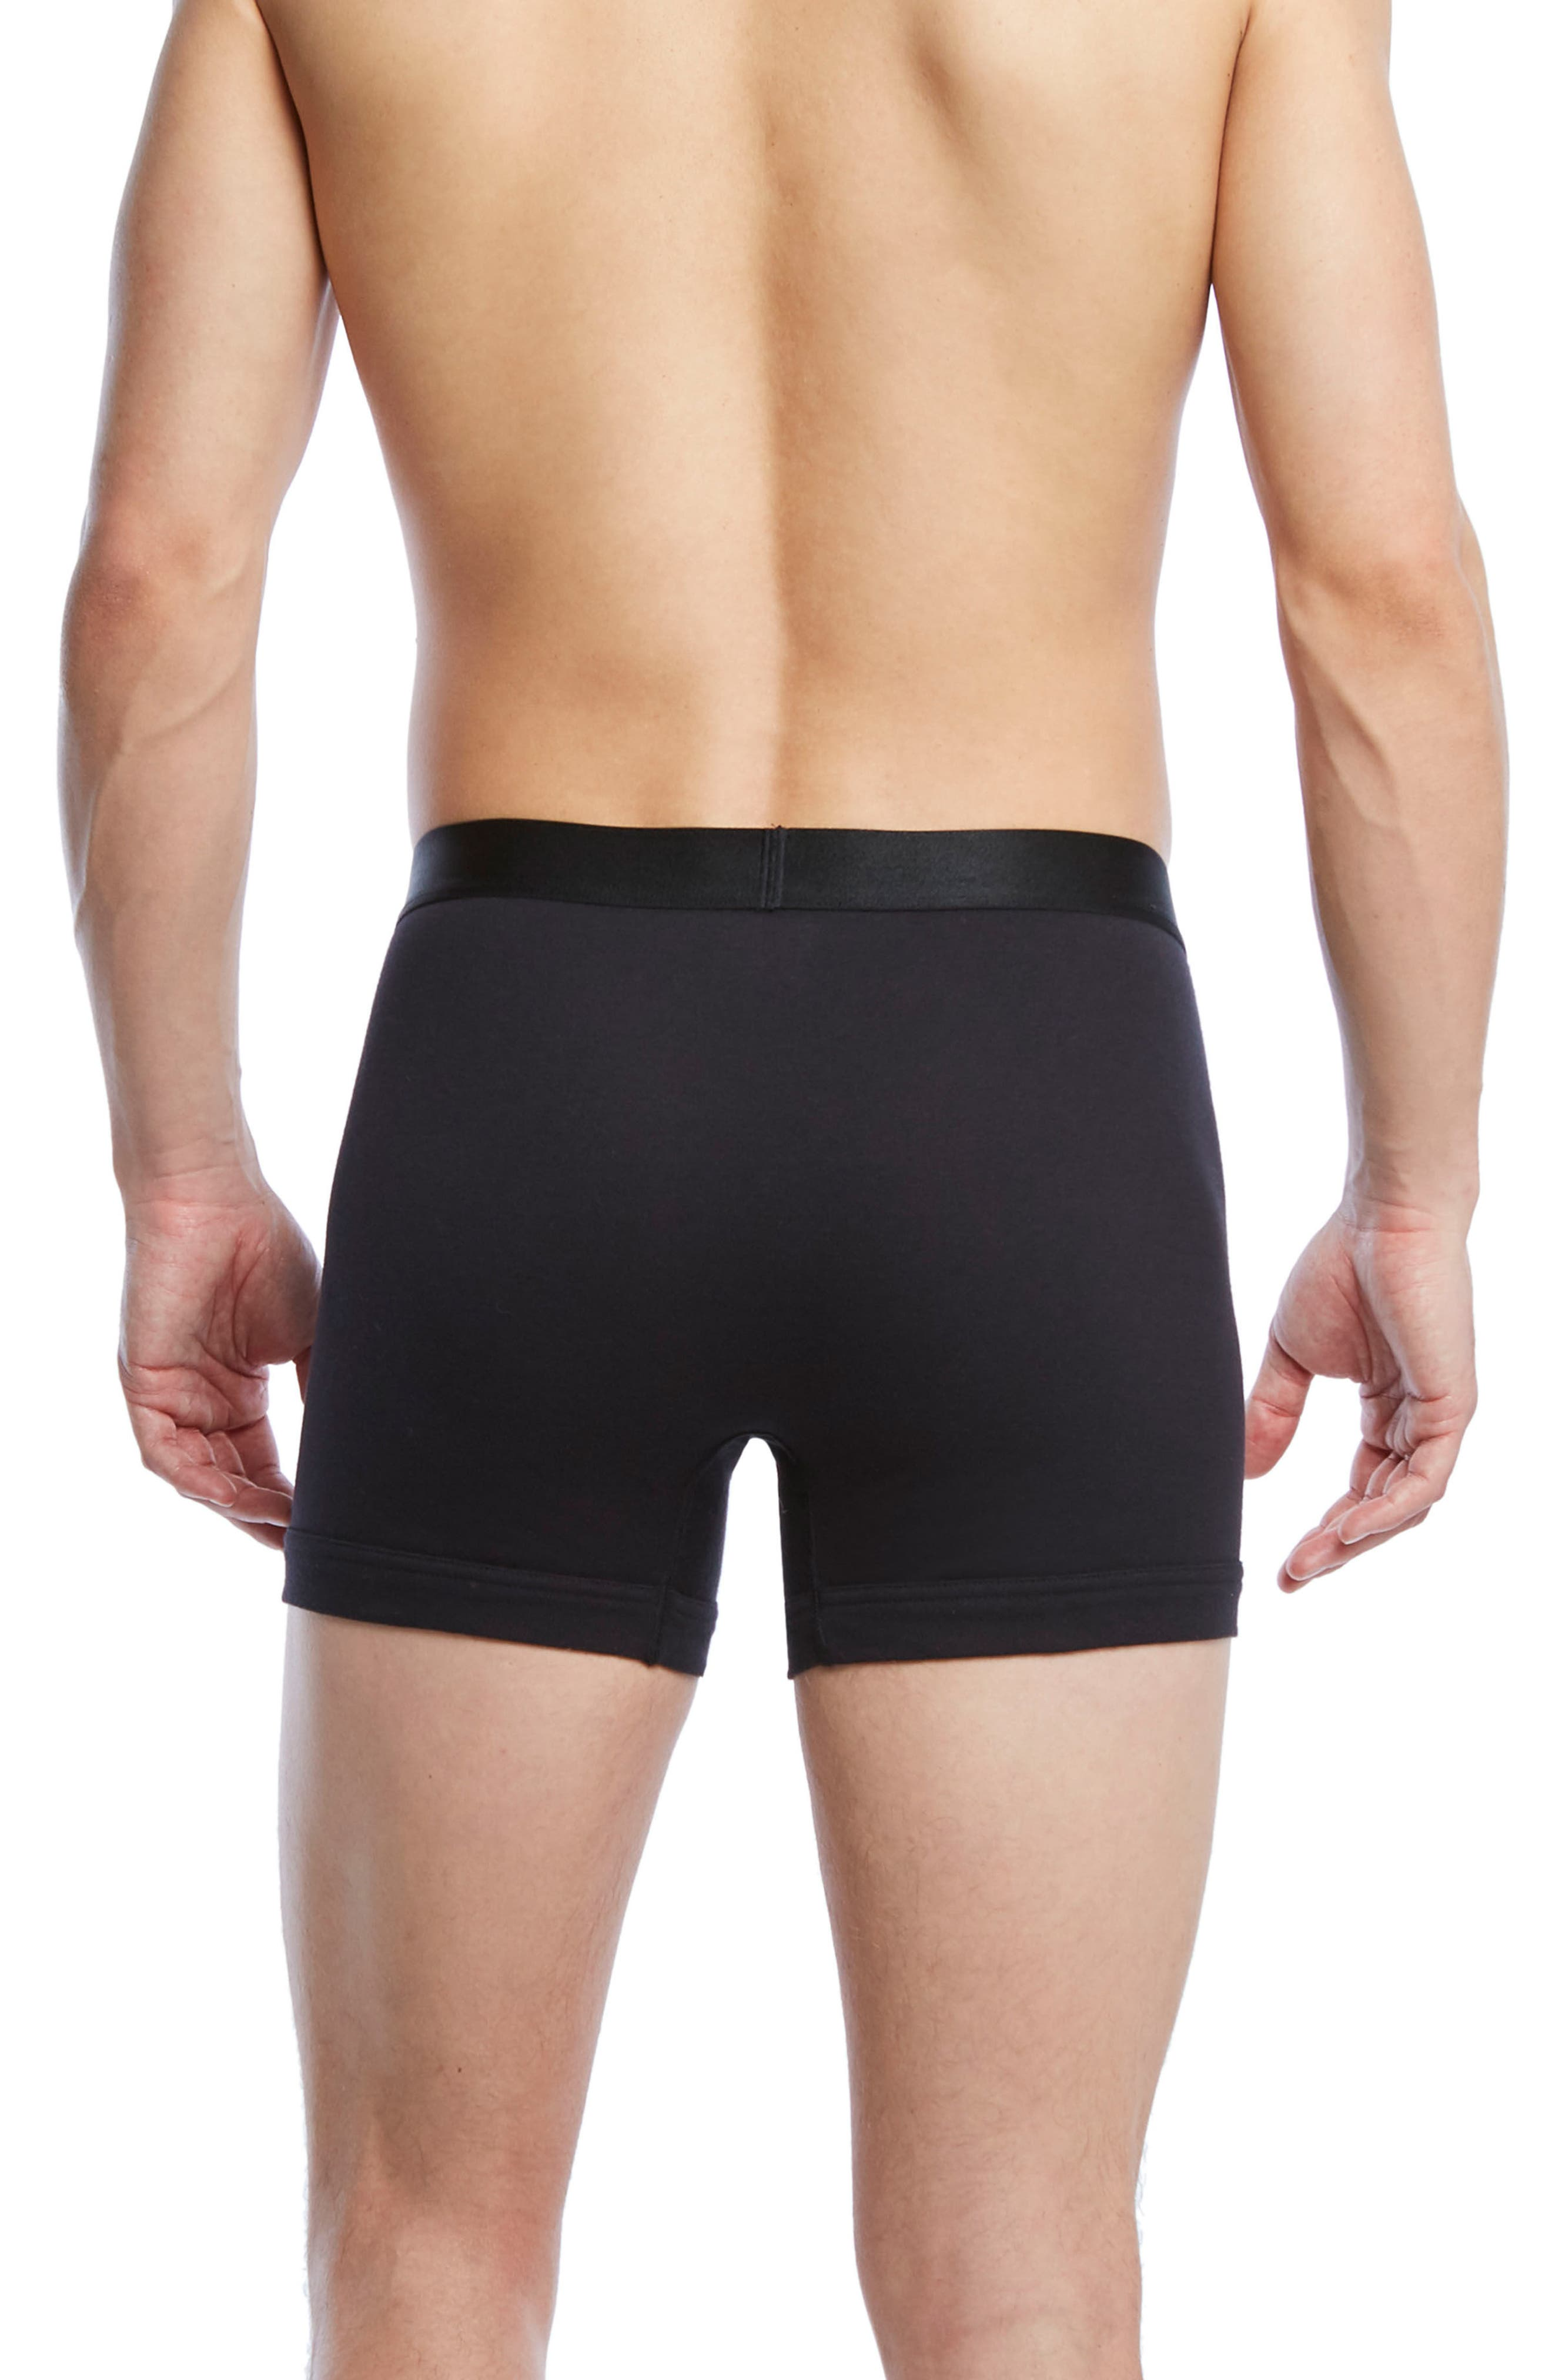 Pima Cotton Boxer Briefs,                             Alternate thumbnail 2, color,                             Black/ Black/ Black